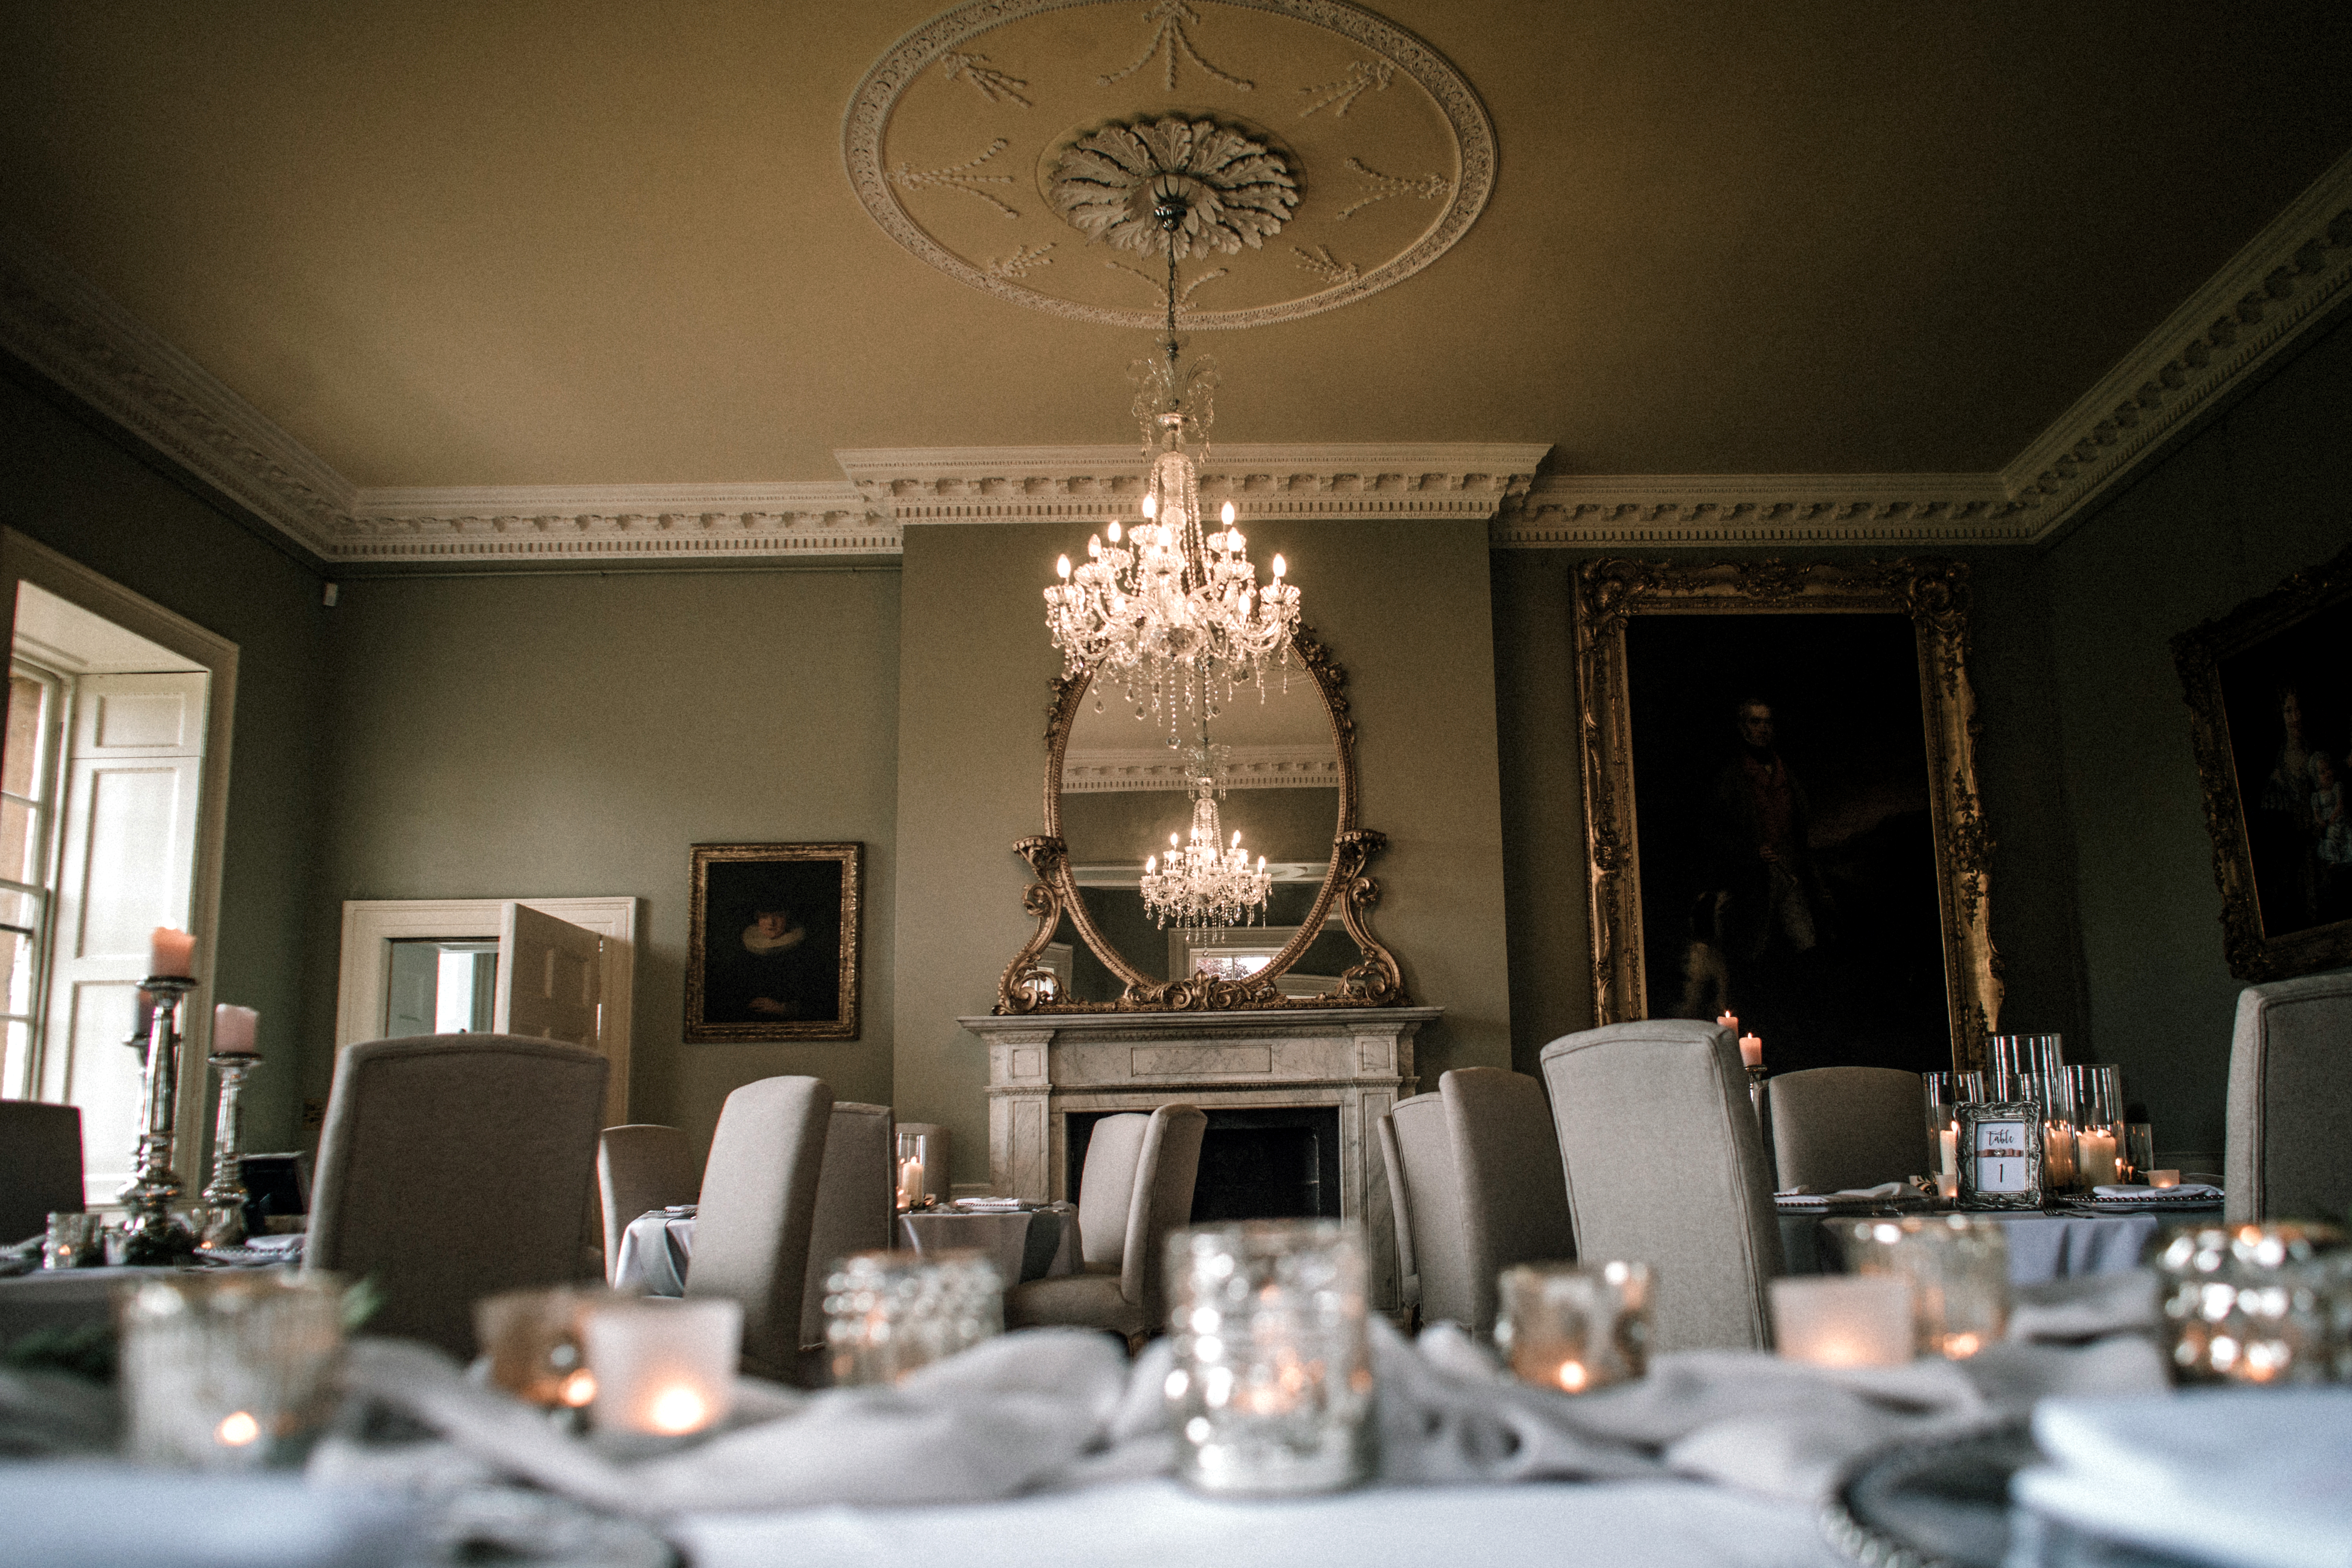 Dining Room at Norwood Park Summer Showcase